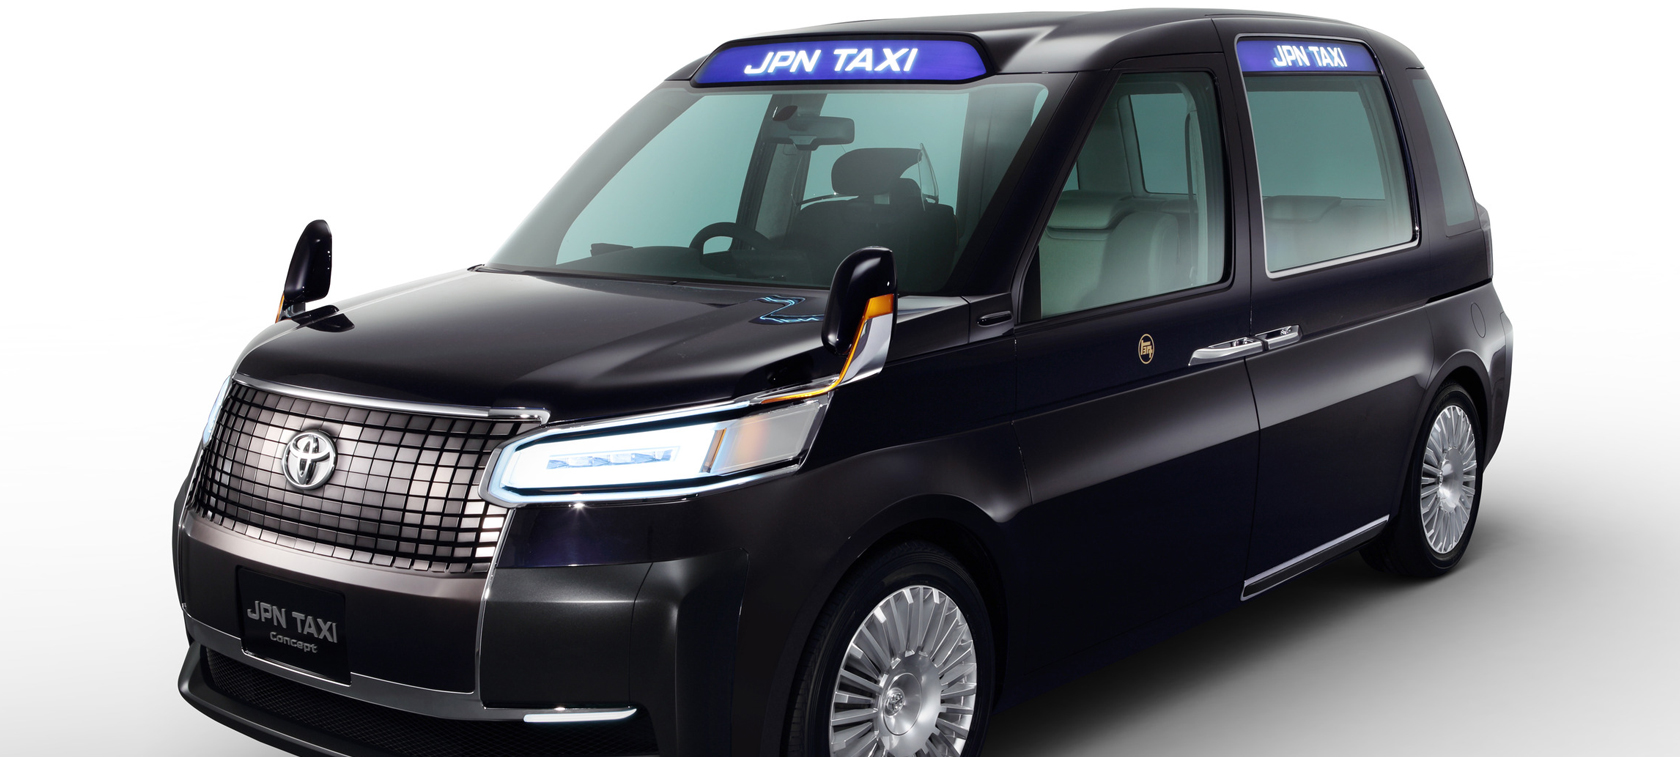 Toyota JPN Taxi - dreams come true